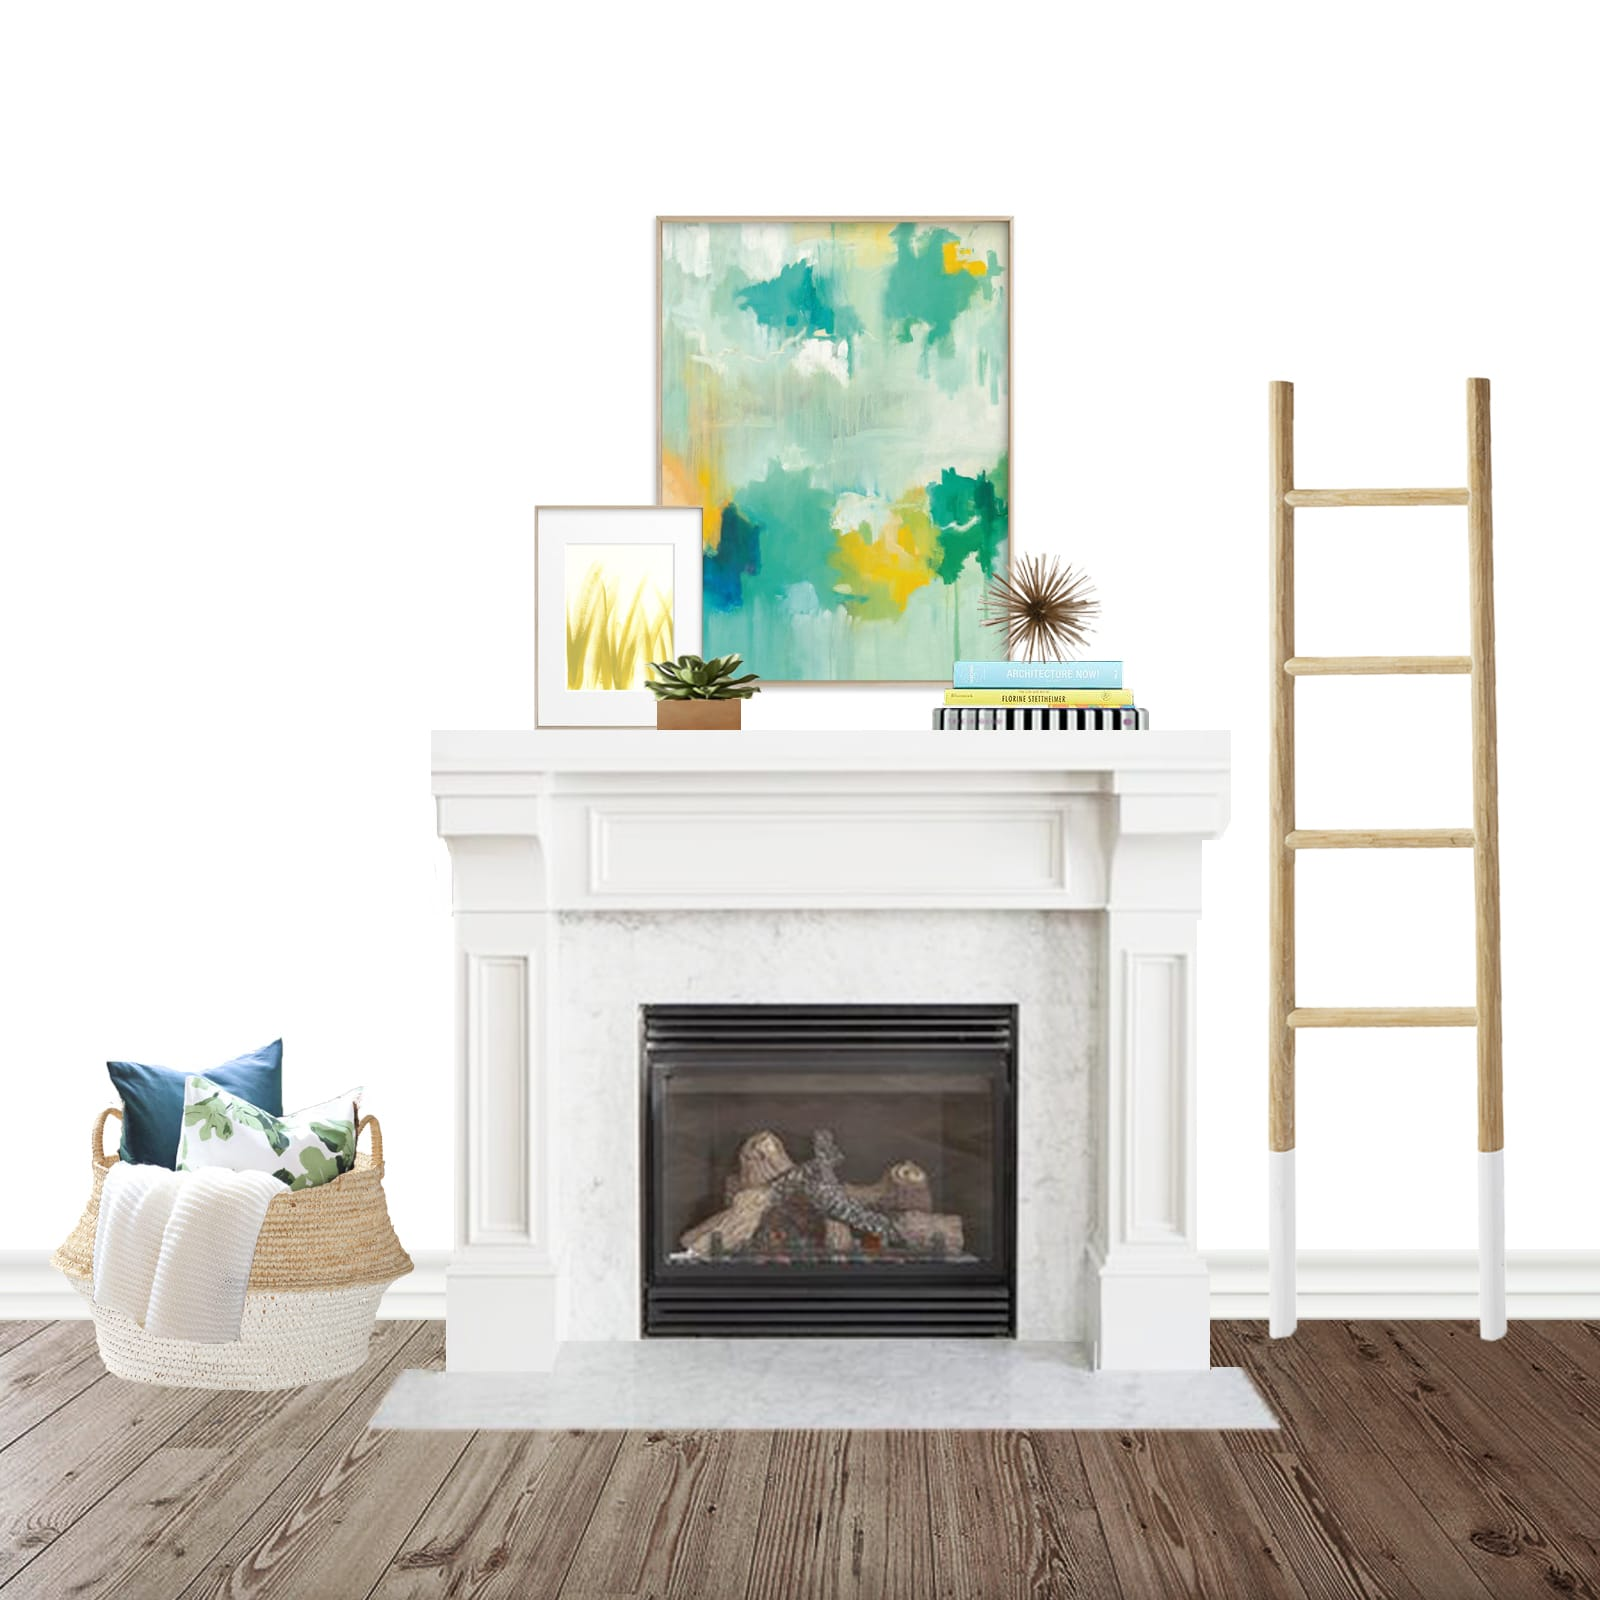 Fireplace Interior Design - Colorful & Casual